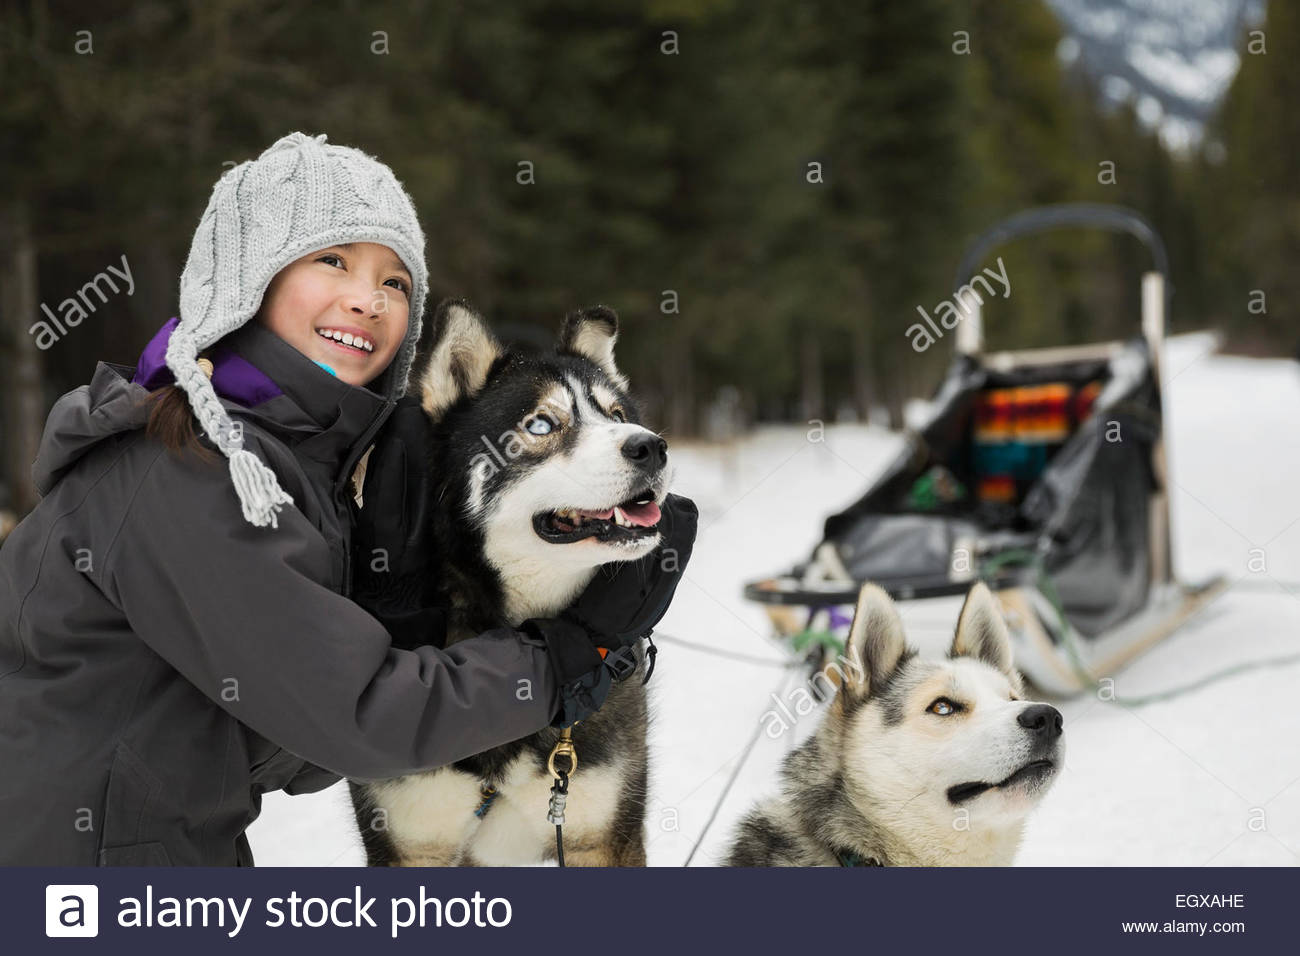 Girl hugging dogsled dog in snow - Stock Image